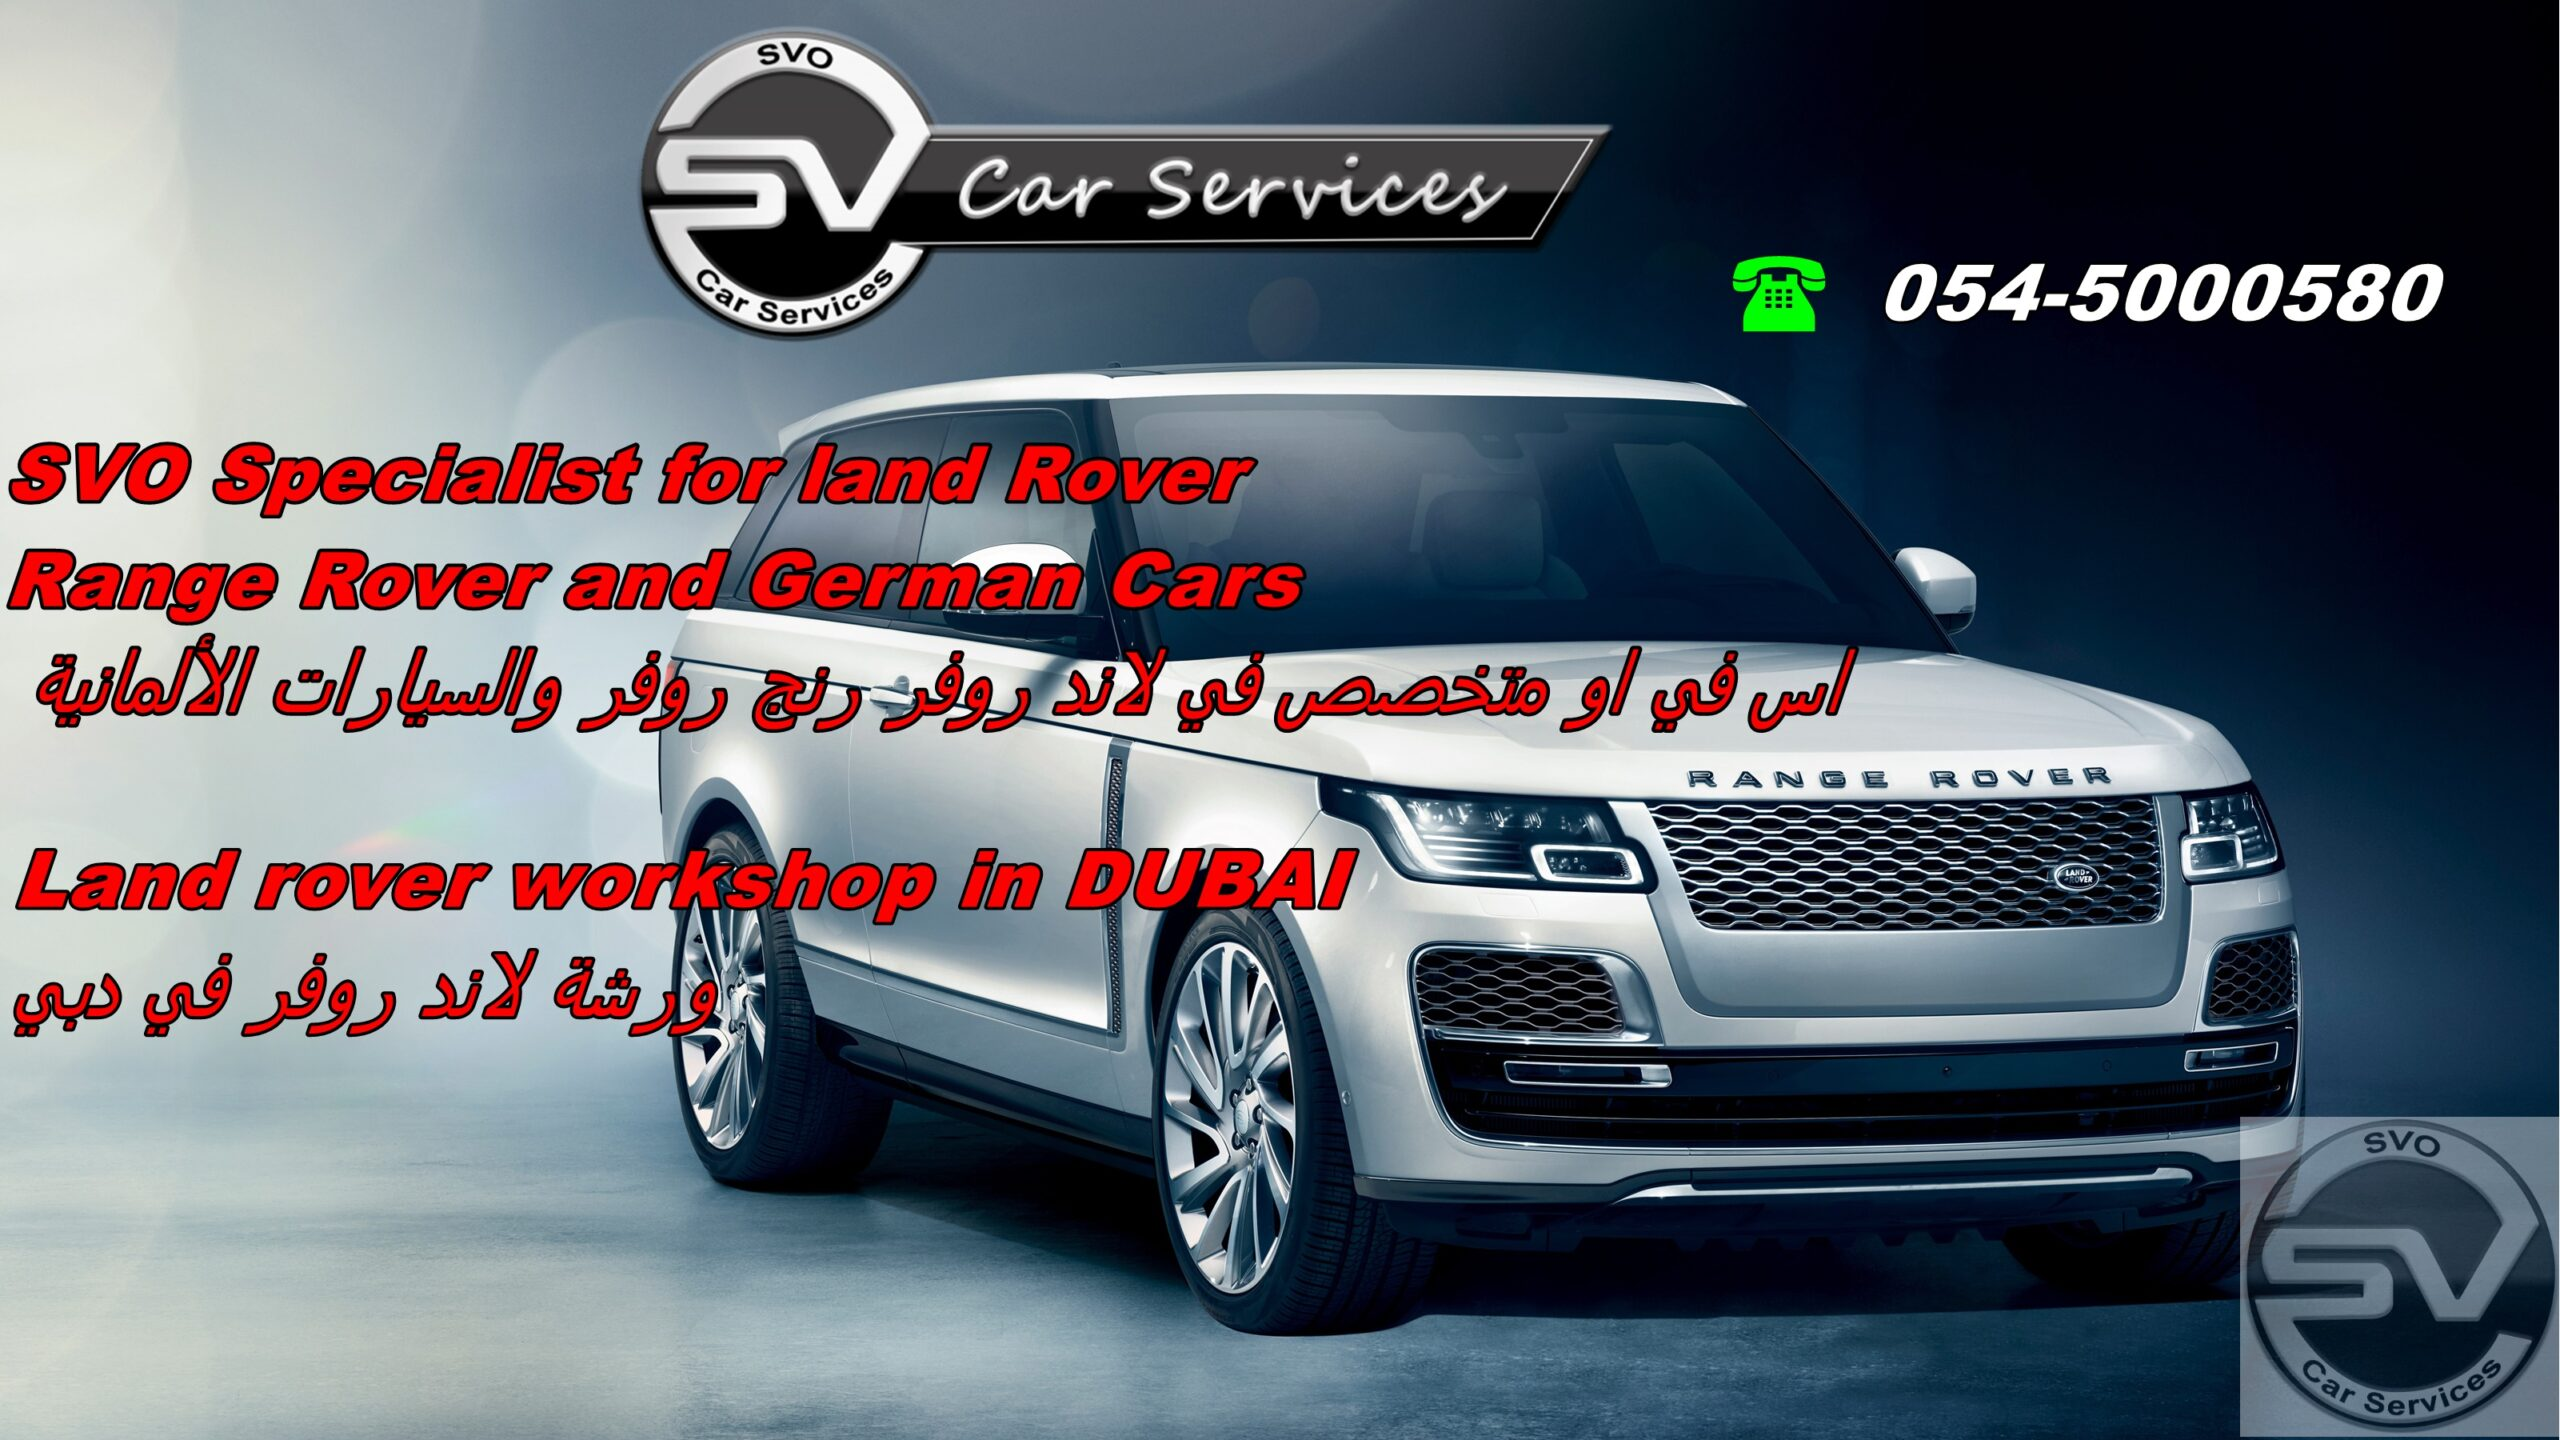 svo land rover workshop dubai.jpg